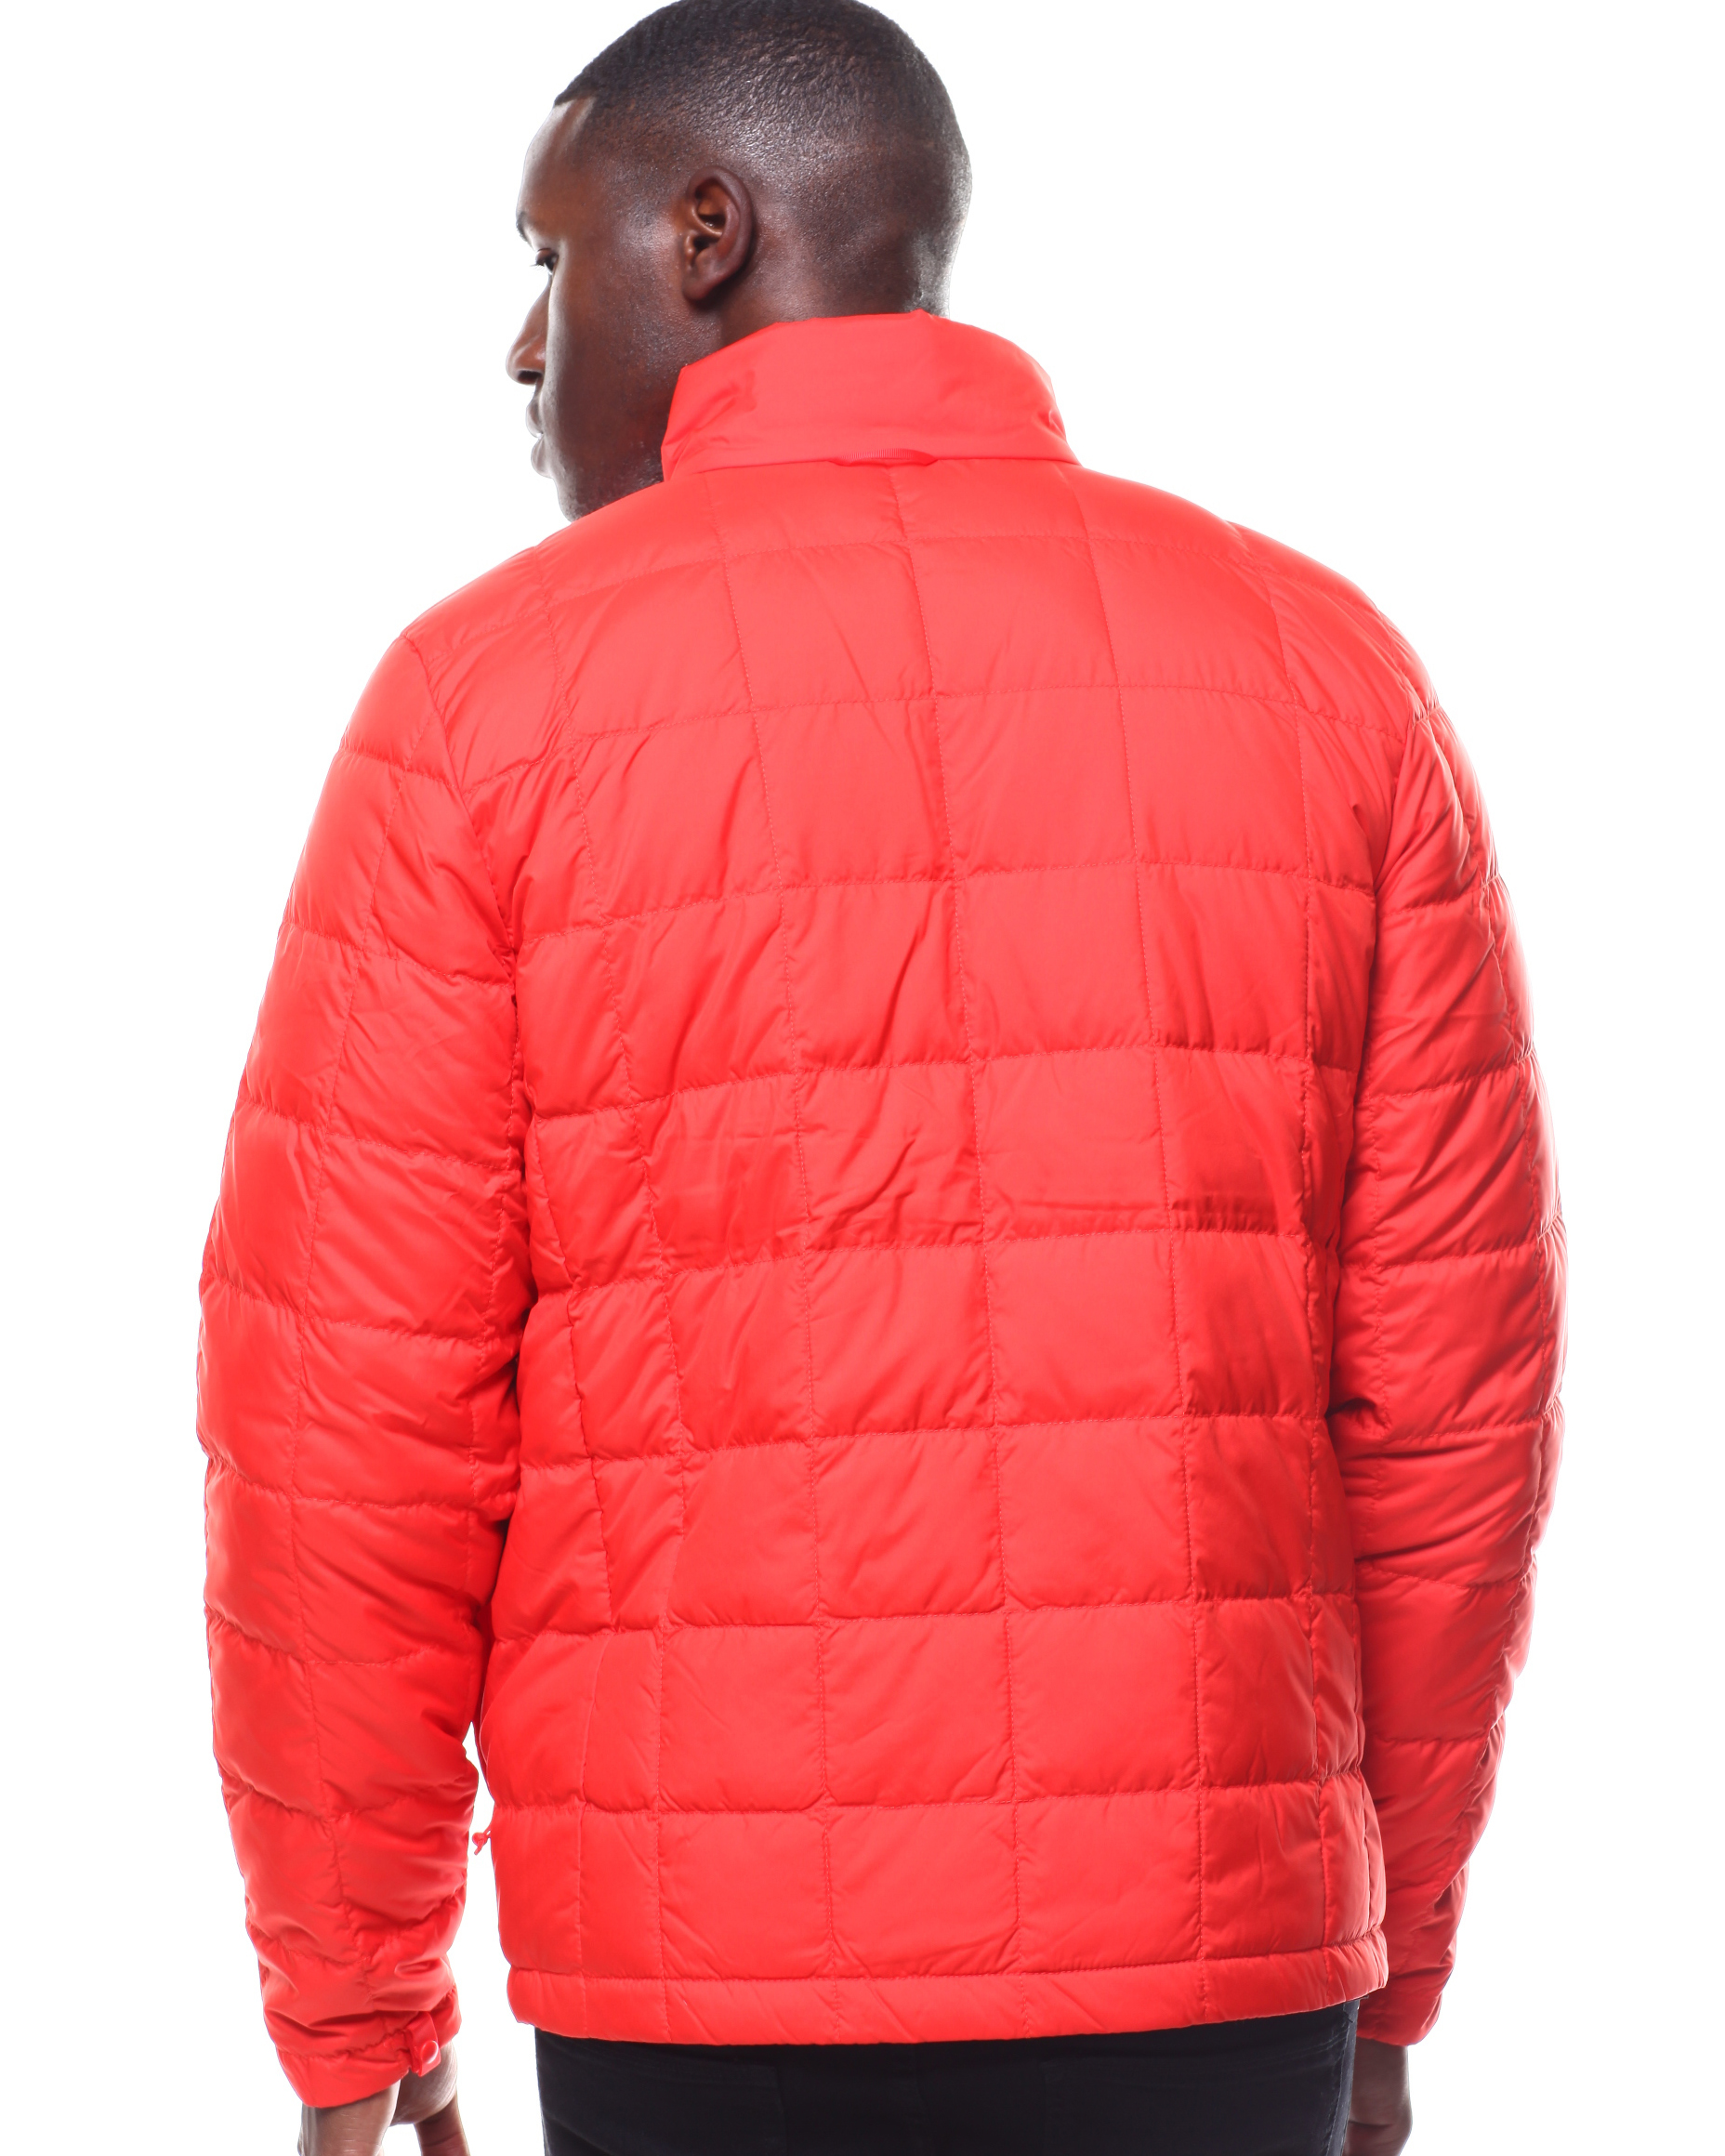 2d507da16 Buy Altier Down Triclimate Jacket Men's Outerwear from The North ...